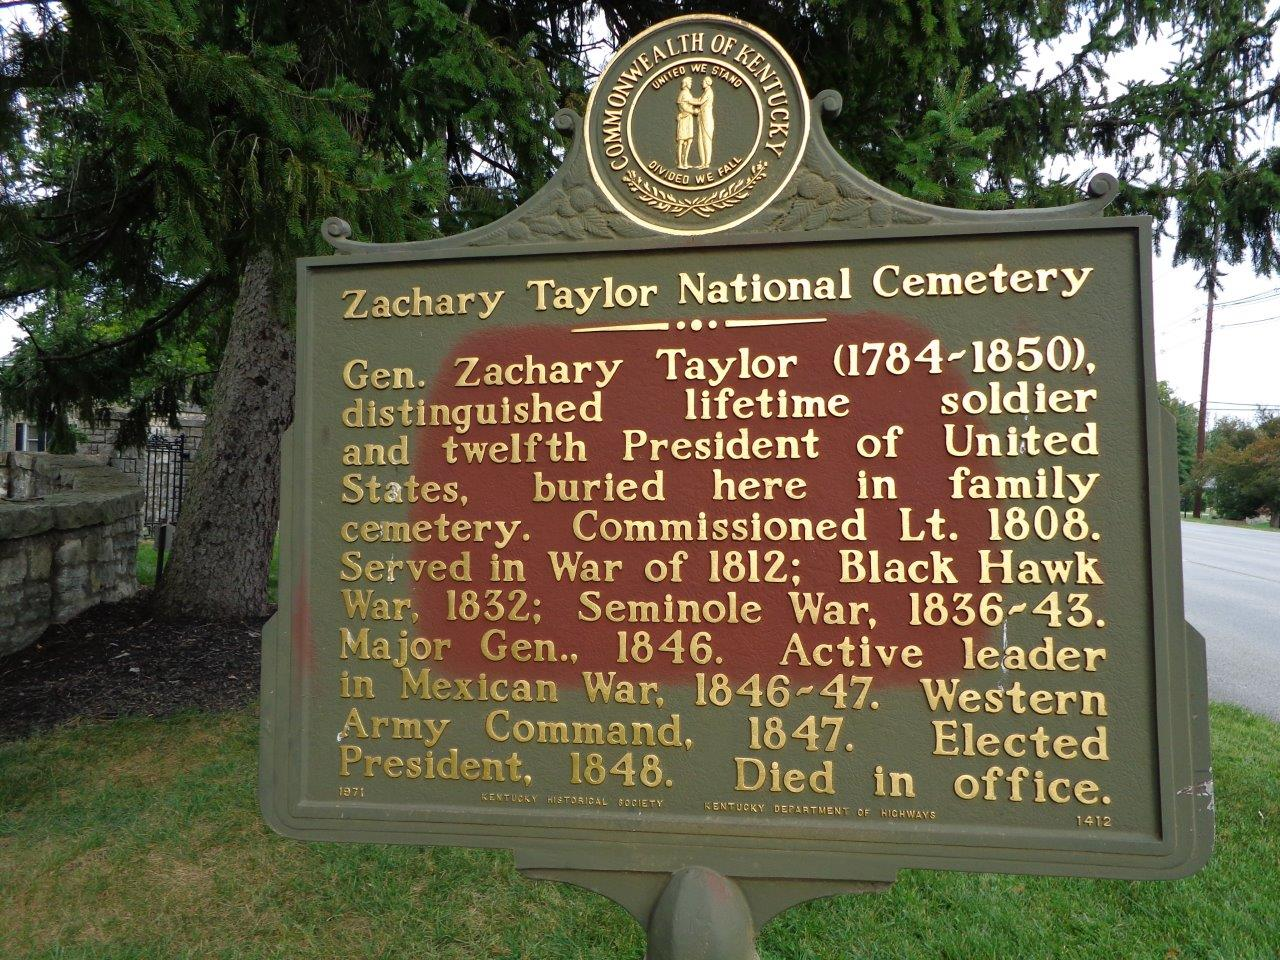 Zachary Taylor National Cemetery marker